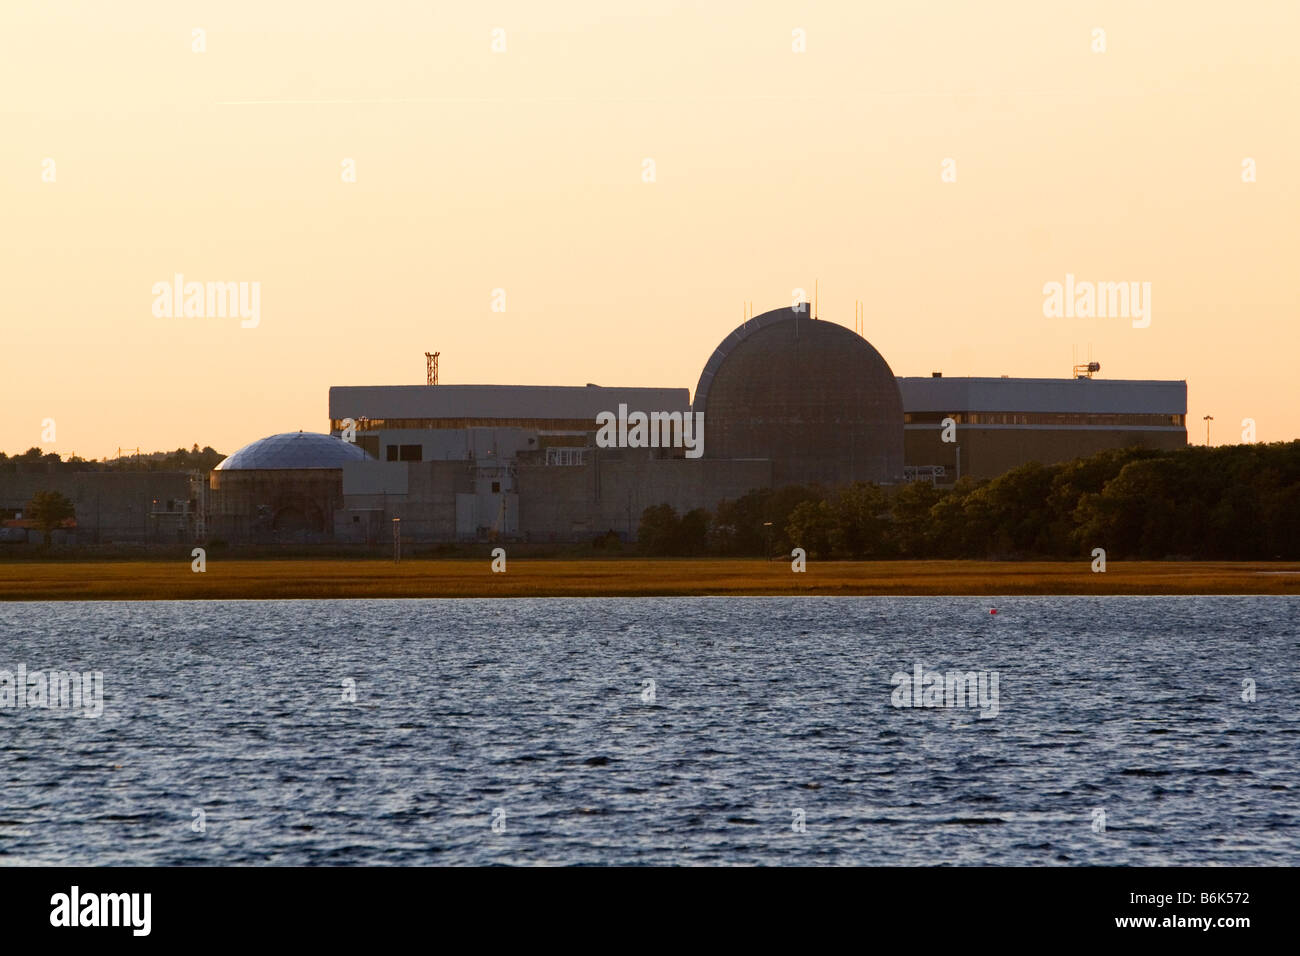 Seabrook Nuclear Power Plant located in Seabrook New Hampshire USA - Stock Image